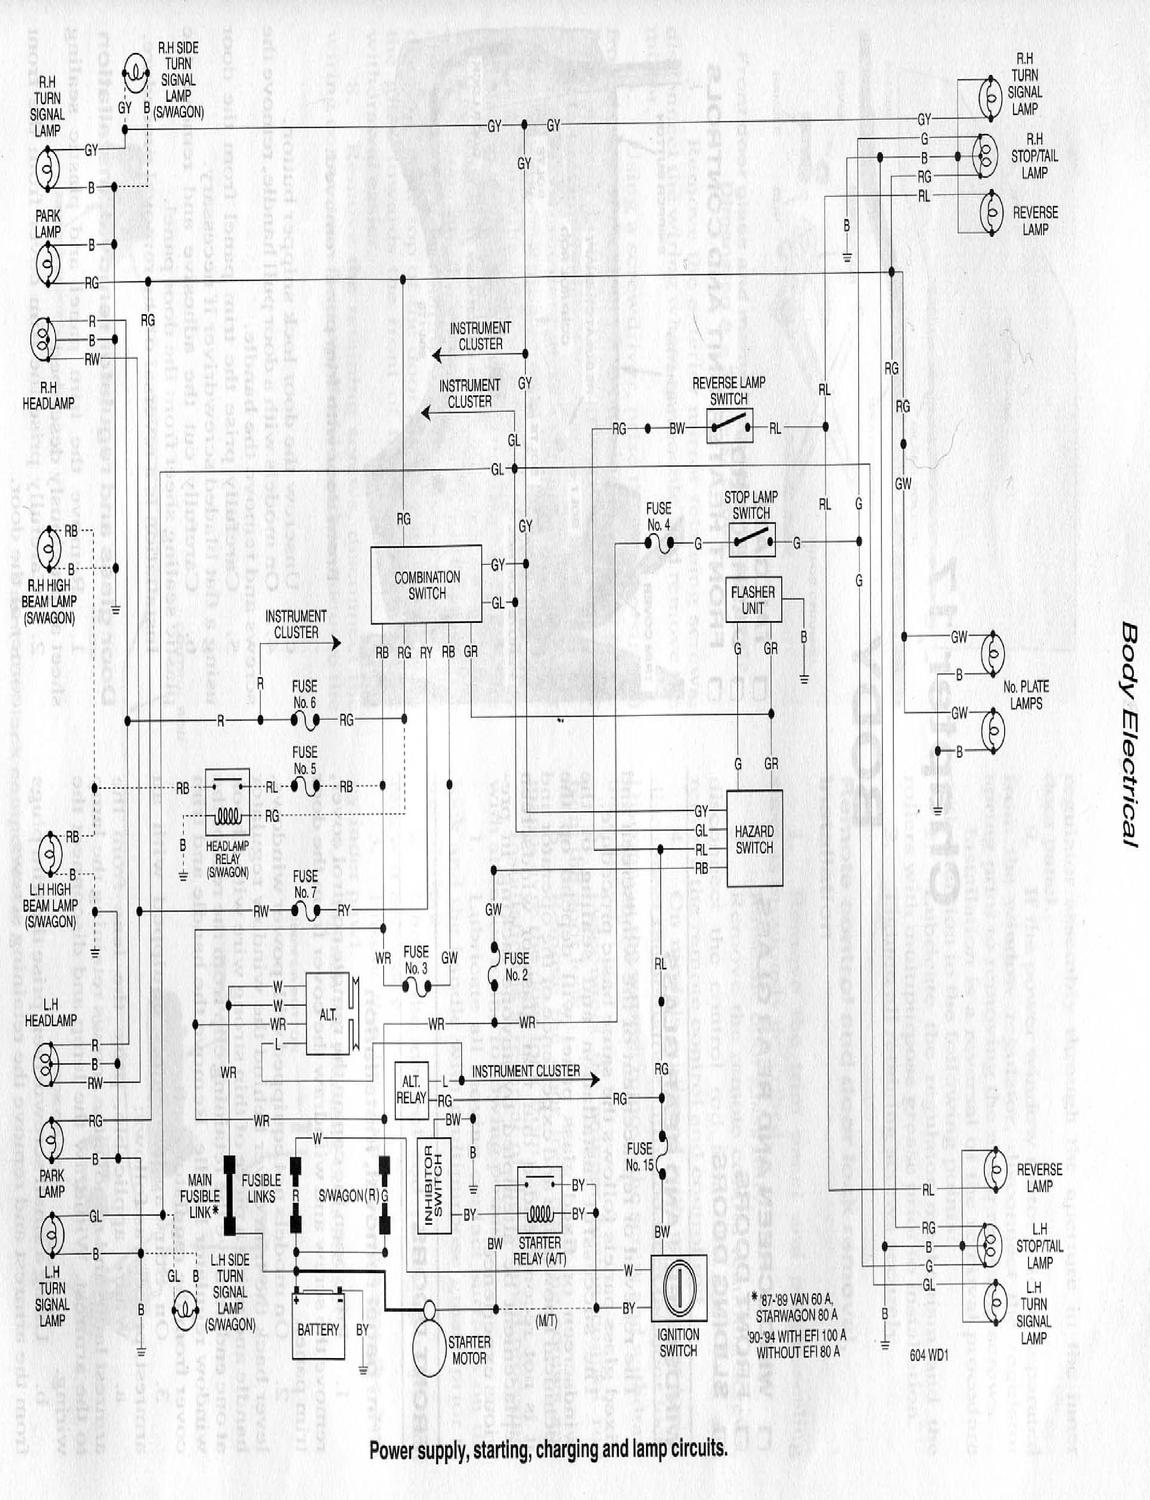 wiring diagram of mitsubishi l300 mitsubishi delica l300 '87-'92 wiring manual by felix - issuu #5